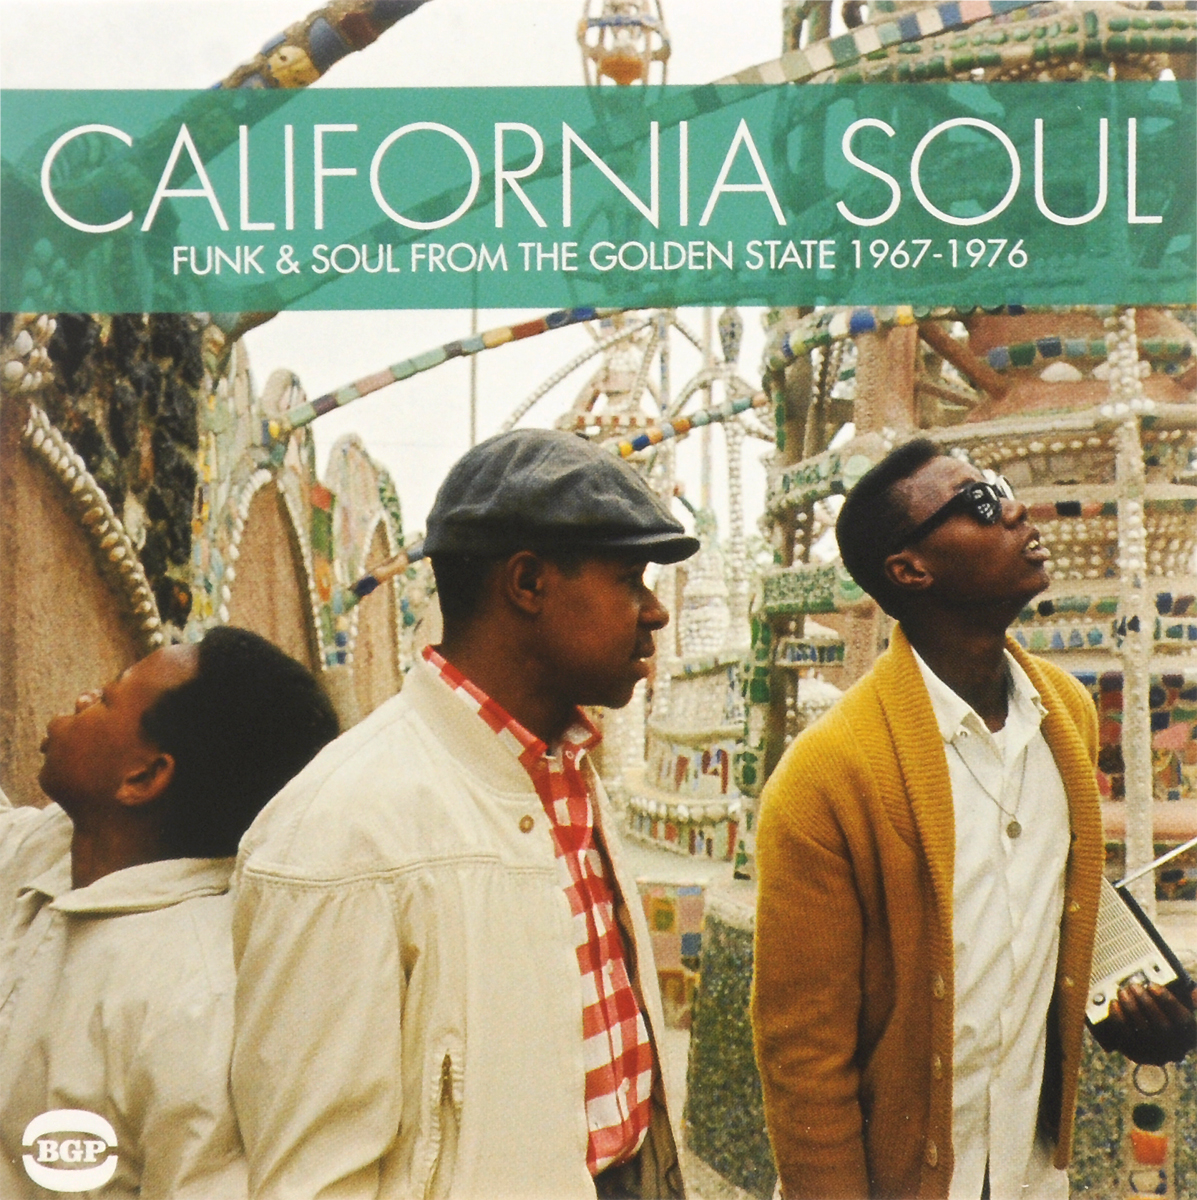 The Choice Of Colors,The Entertainers IV,Бренда Джорж,Union,З.З. Хилл,The Soul Pack,Jesse,Anita,Chucky Thurmon,The Soul Sensations California Soul. Funk & Soul From The Golden State 1967-1976 soul ii soul soul ii soul volume iv the classic singles 88 93 2 lp